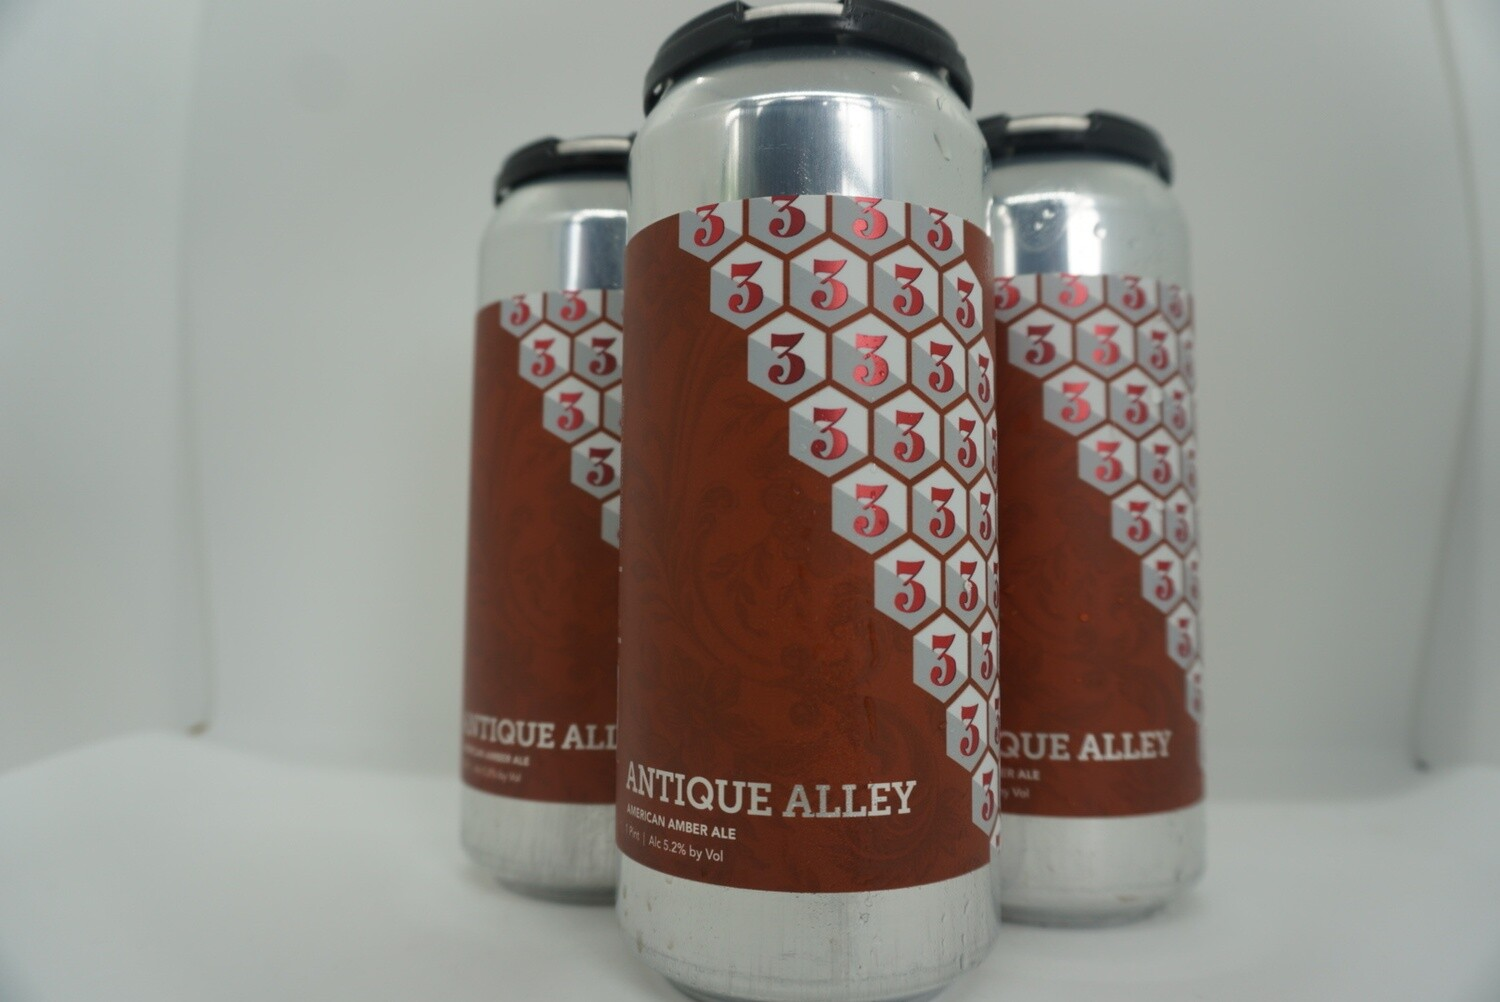 3 Sons - Antique Alley - Amber - 5.4% ABV - 4 Pack